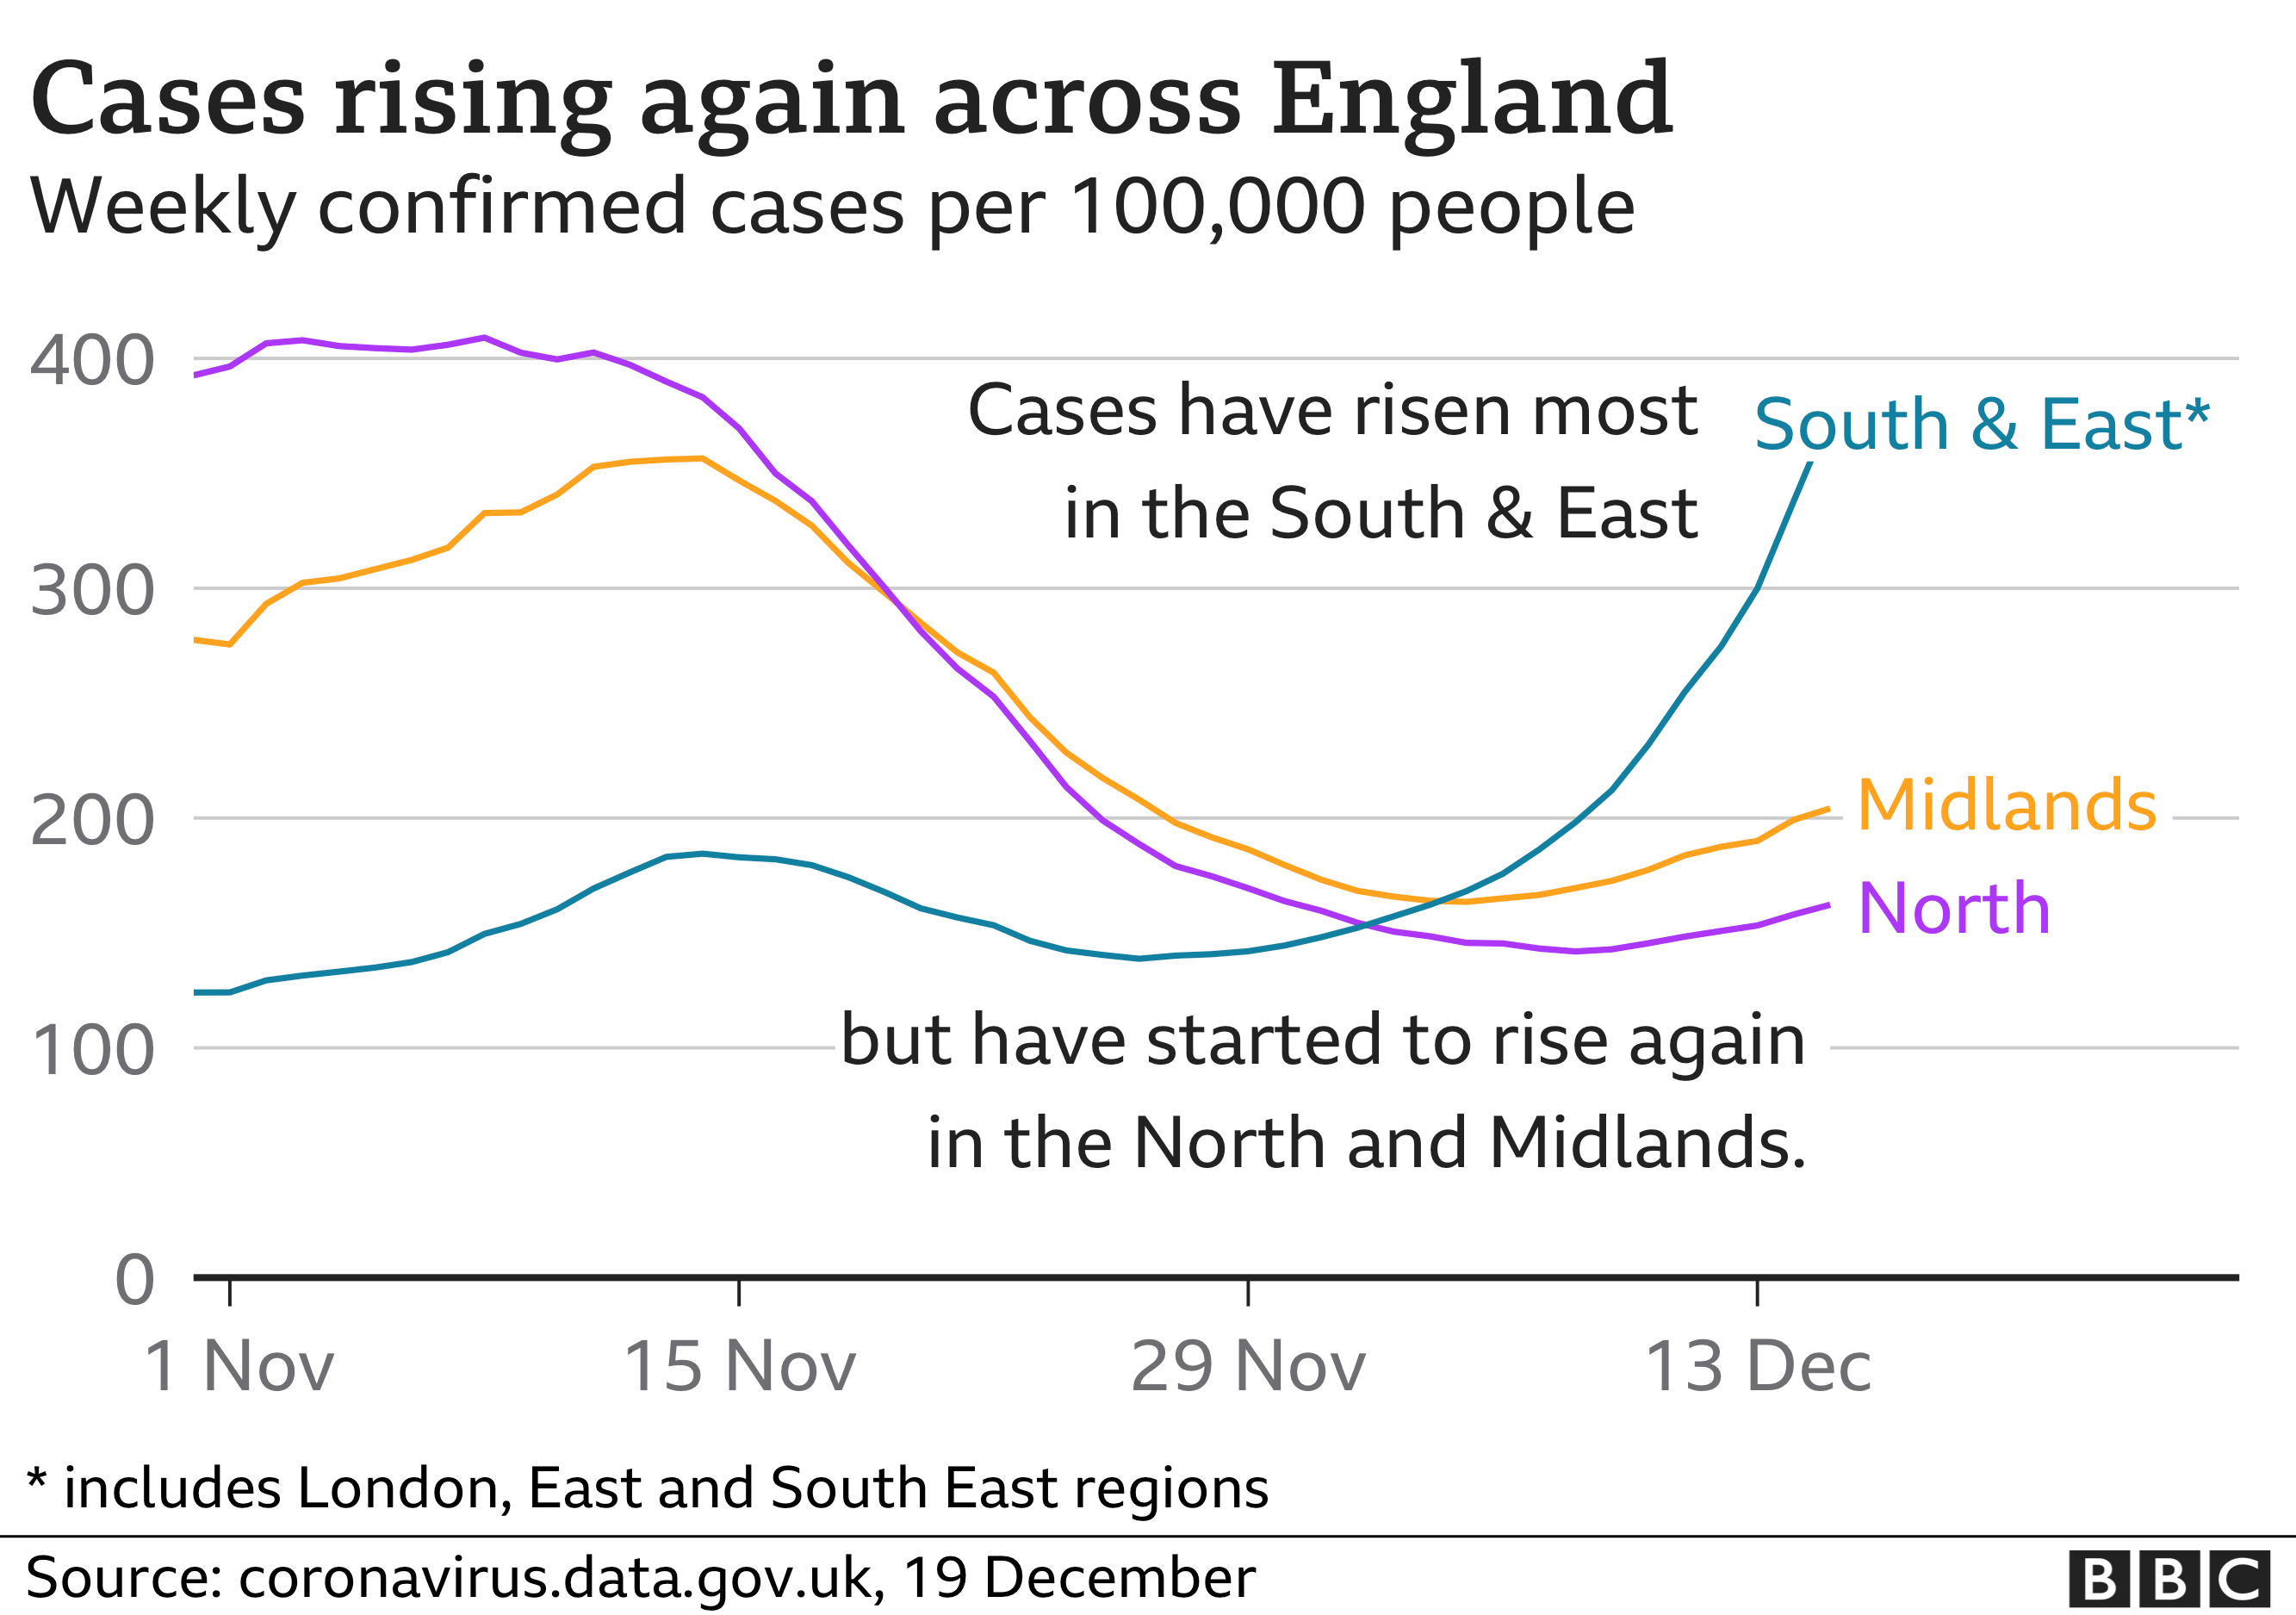 Chart showing cases rising across England